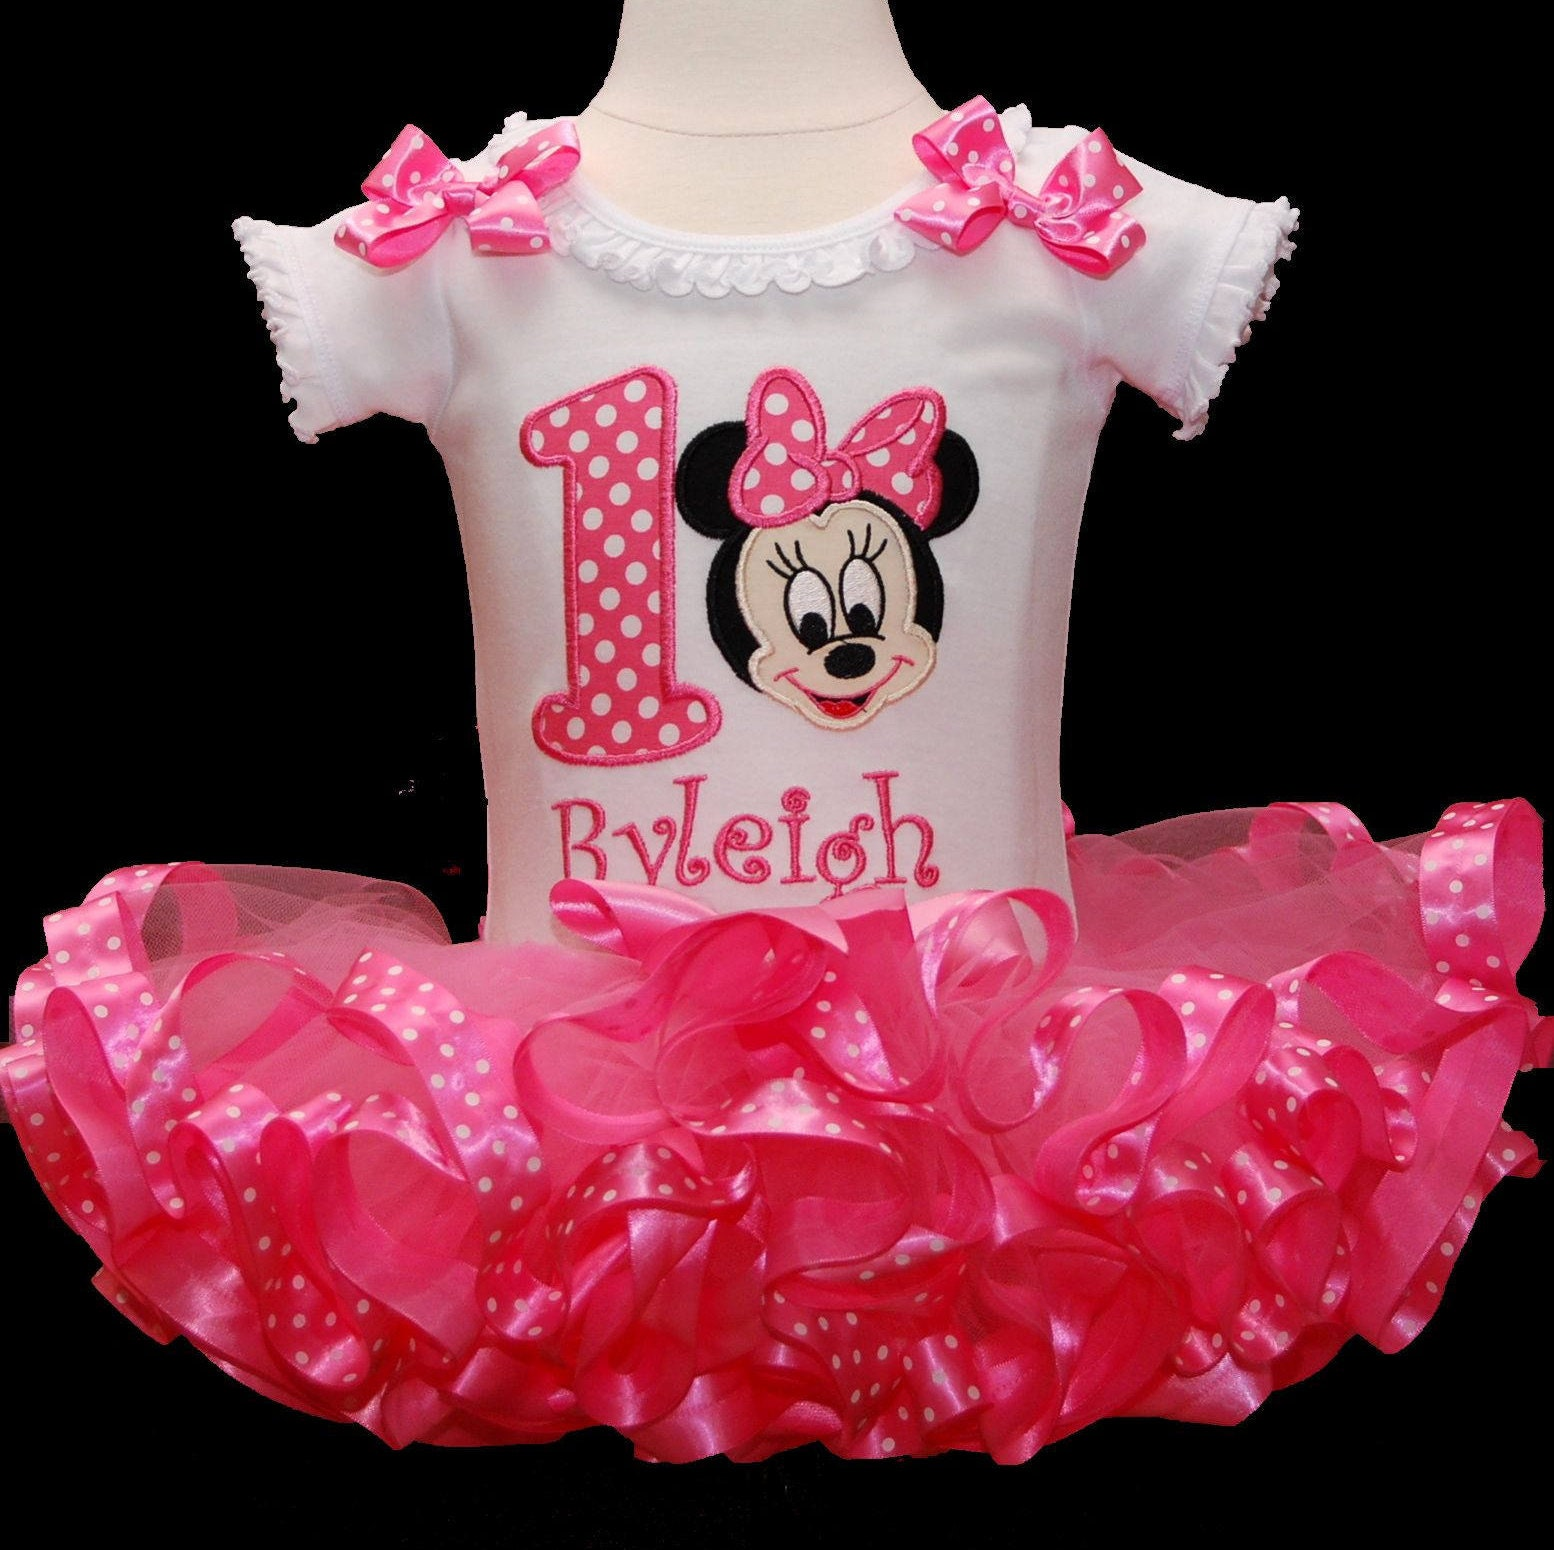 Minnie Mouse BirthdayTutu Outfit Baby Minnie Mouse tutu outfit 1st birthday girl cake smash outfit Minnie Mouse birthday tutu dress bloomers